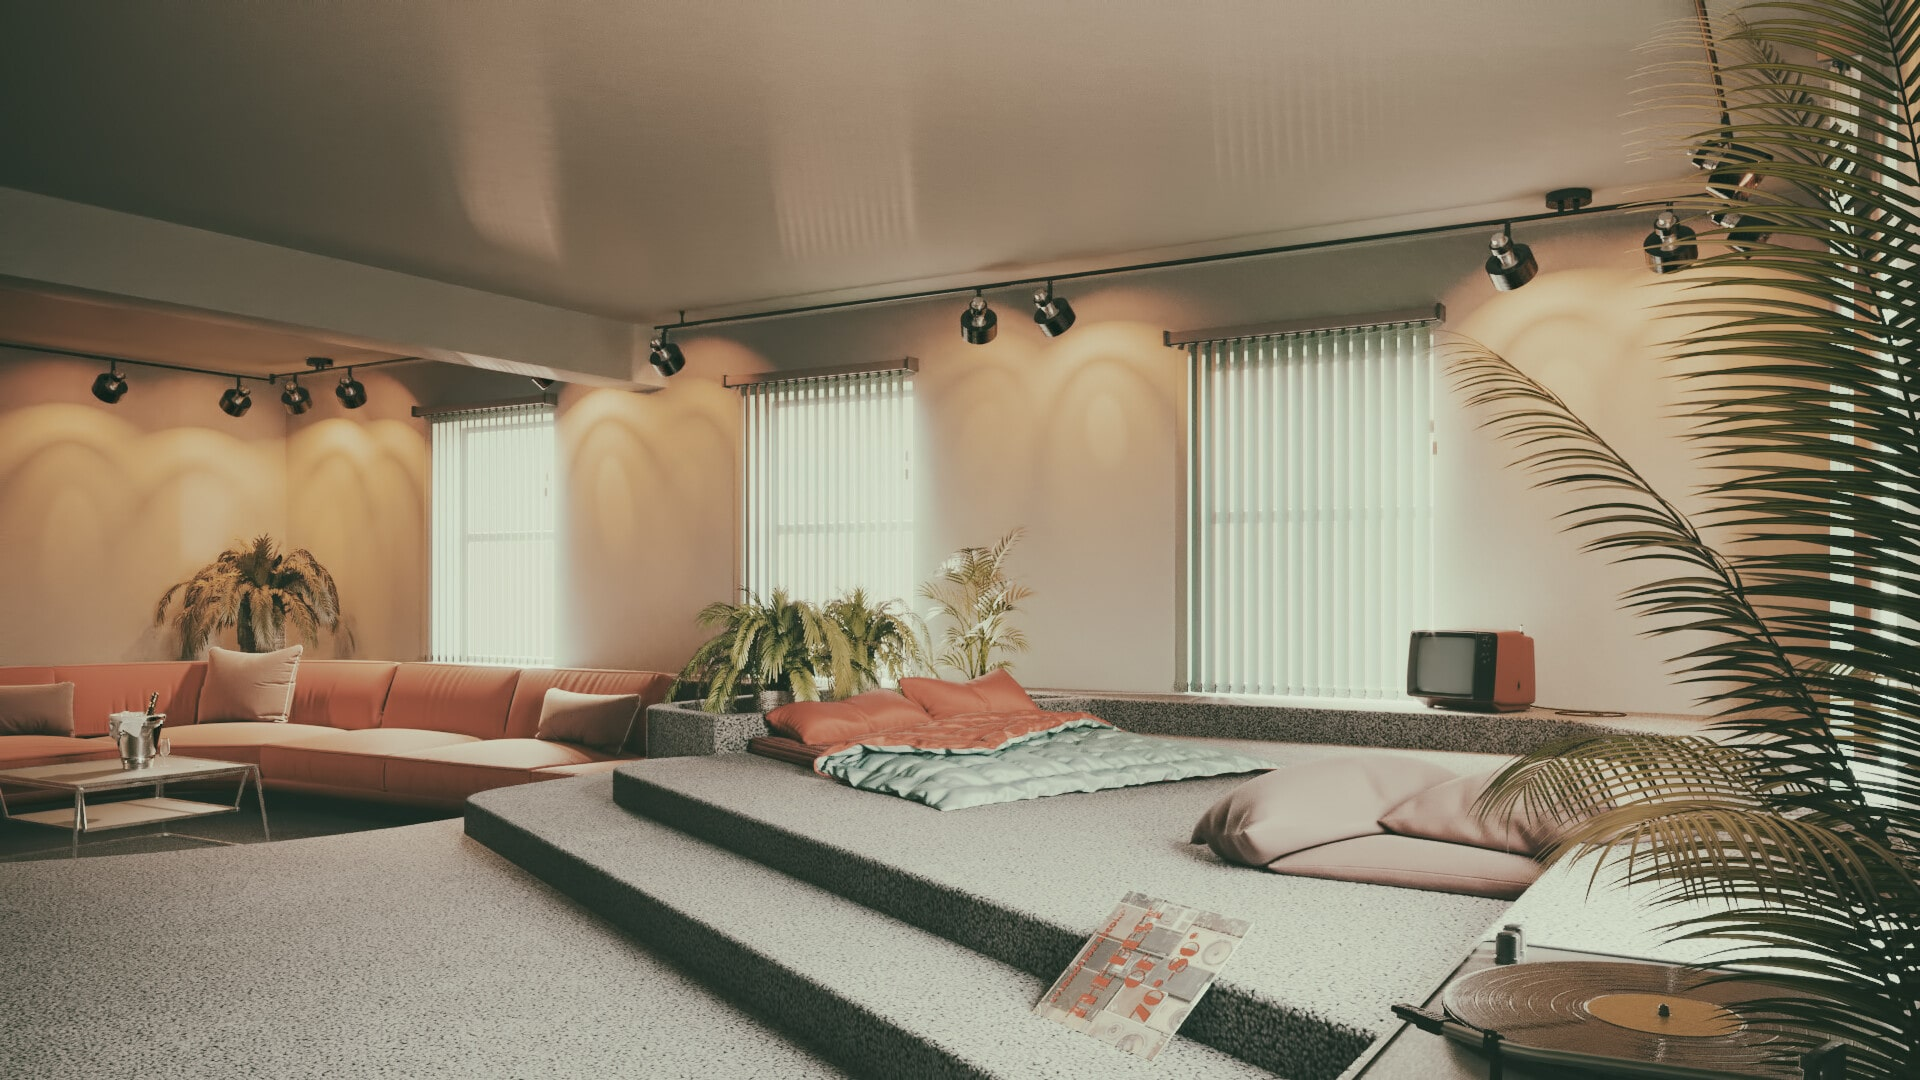 80's home decorating ideas